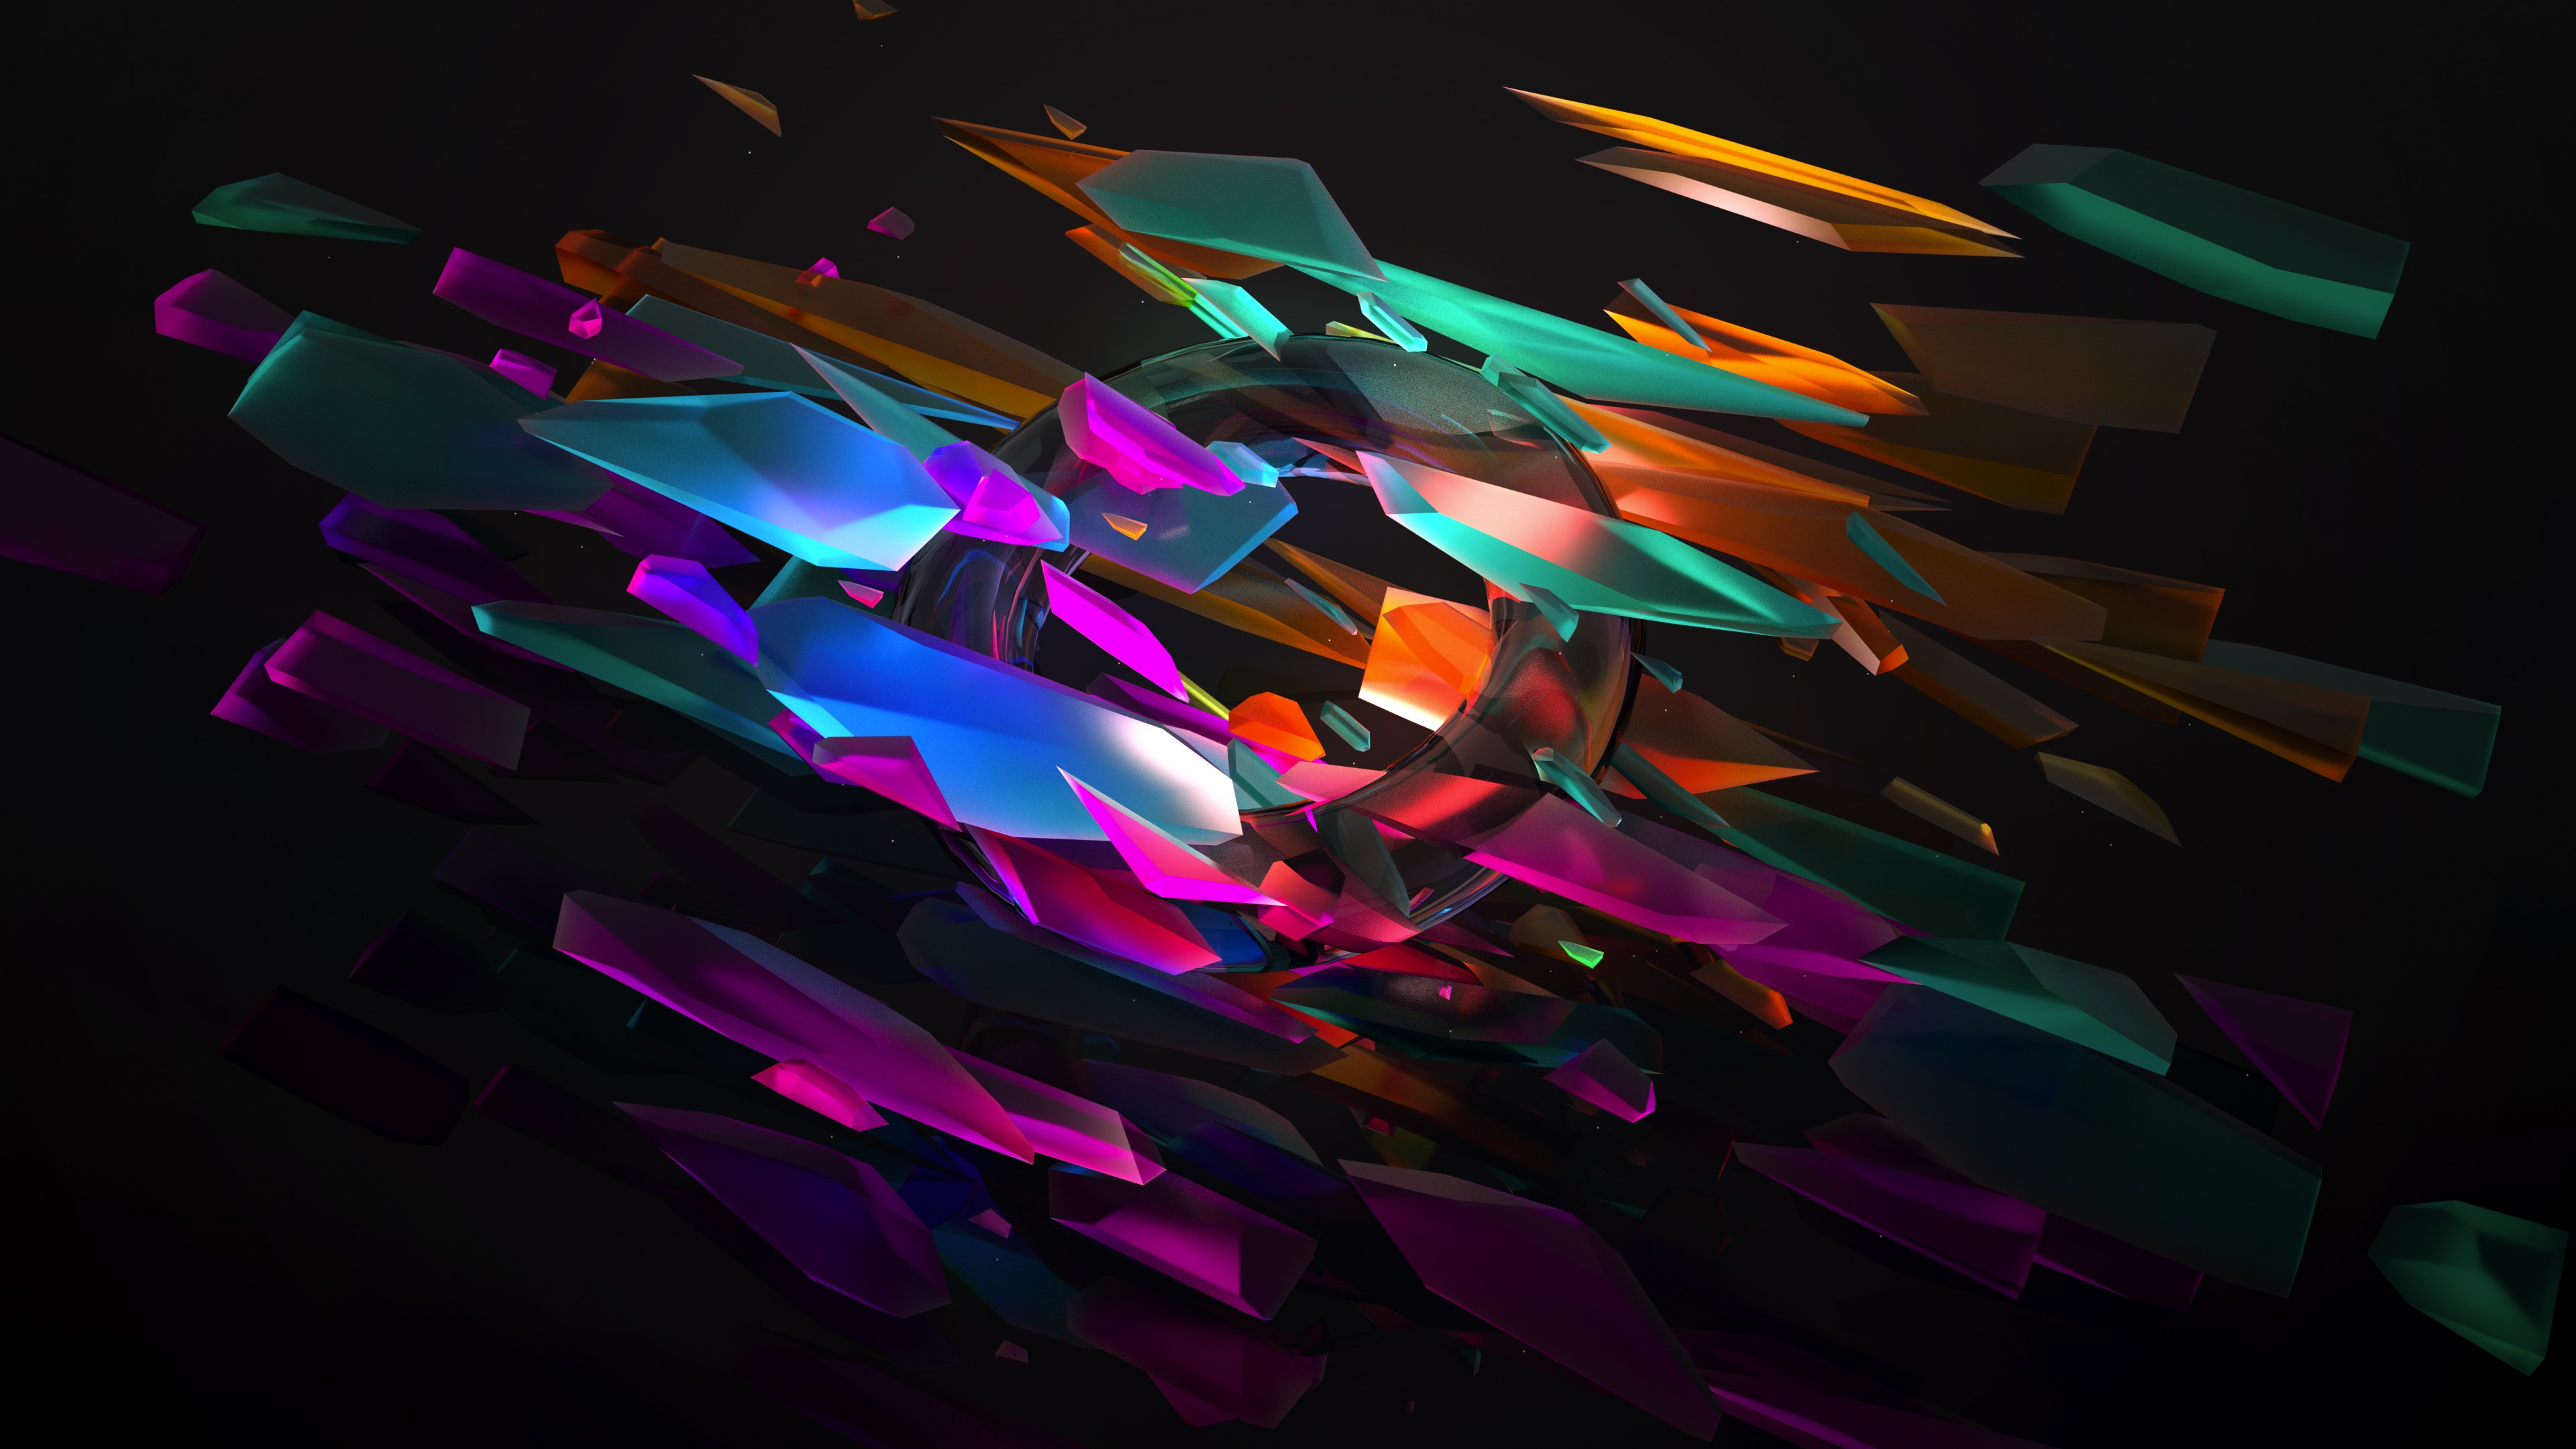 General 3840x2160 broken glass digital art glass Justin Maller black background 3D colorful